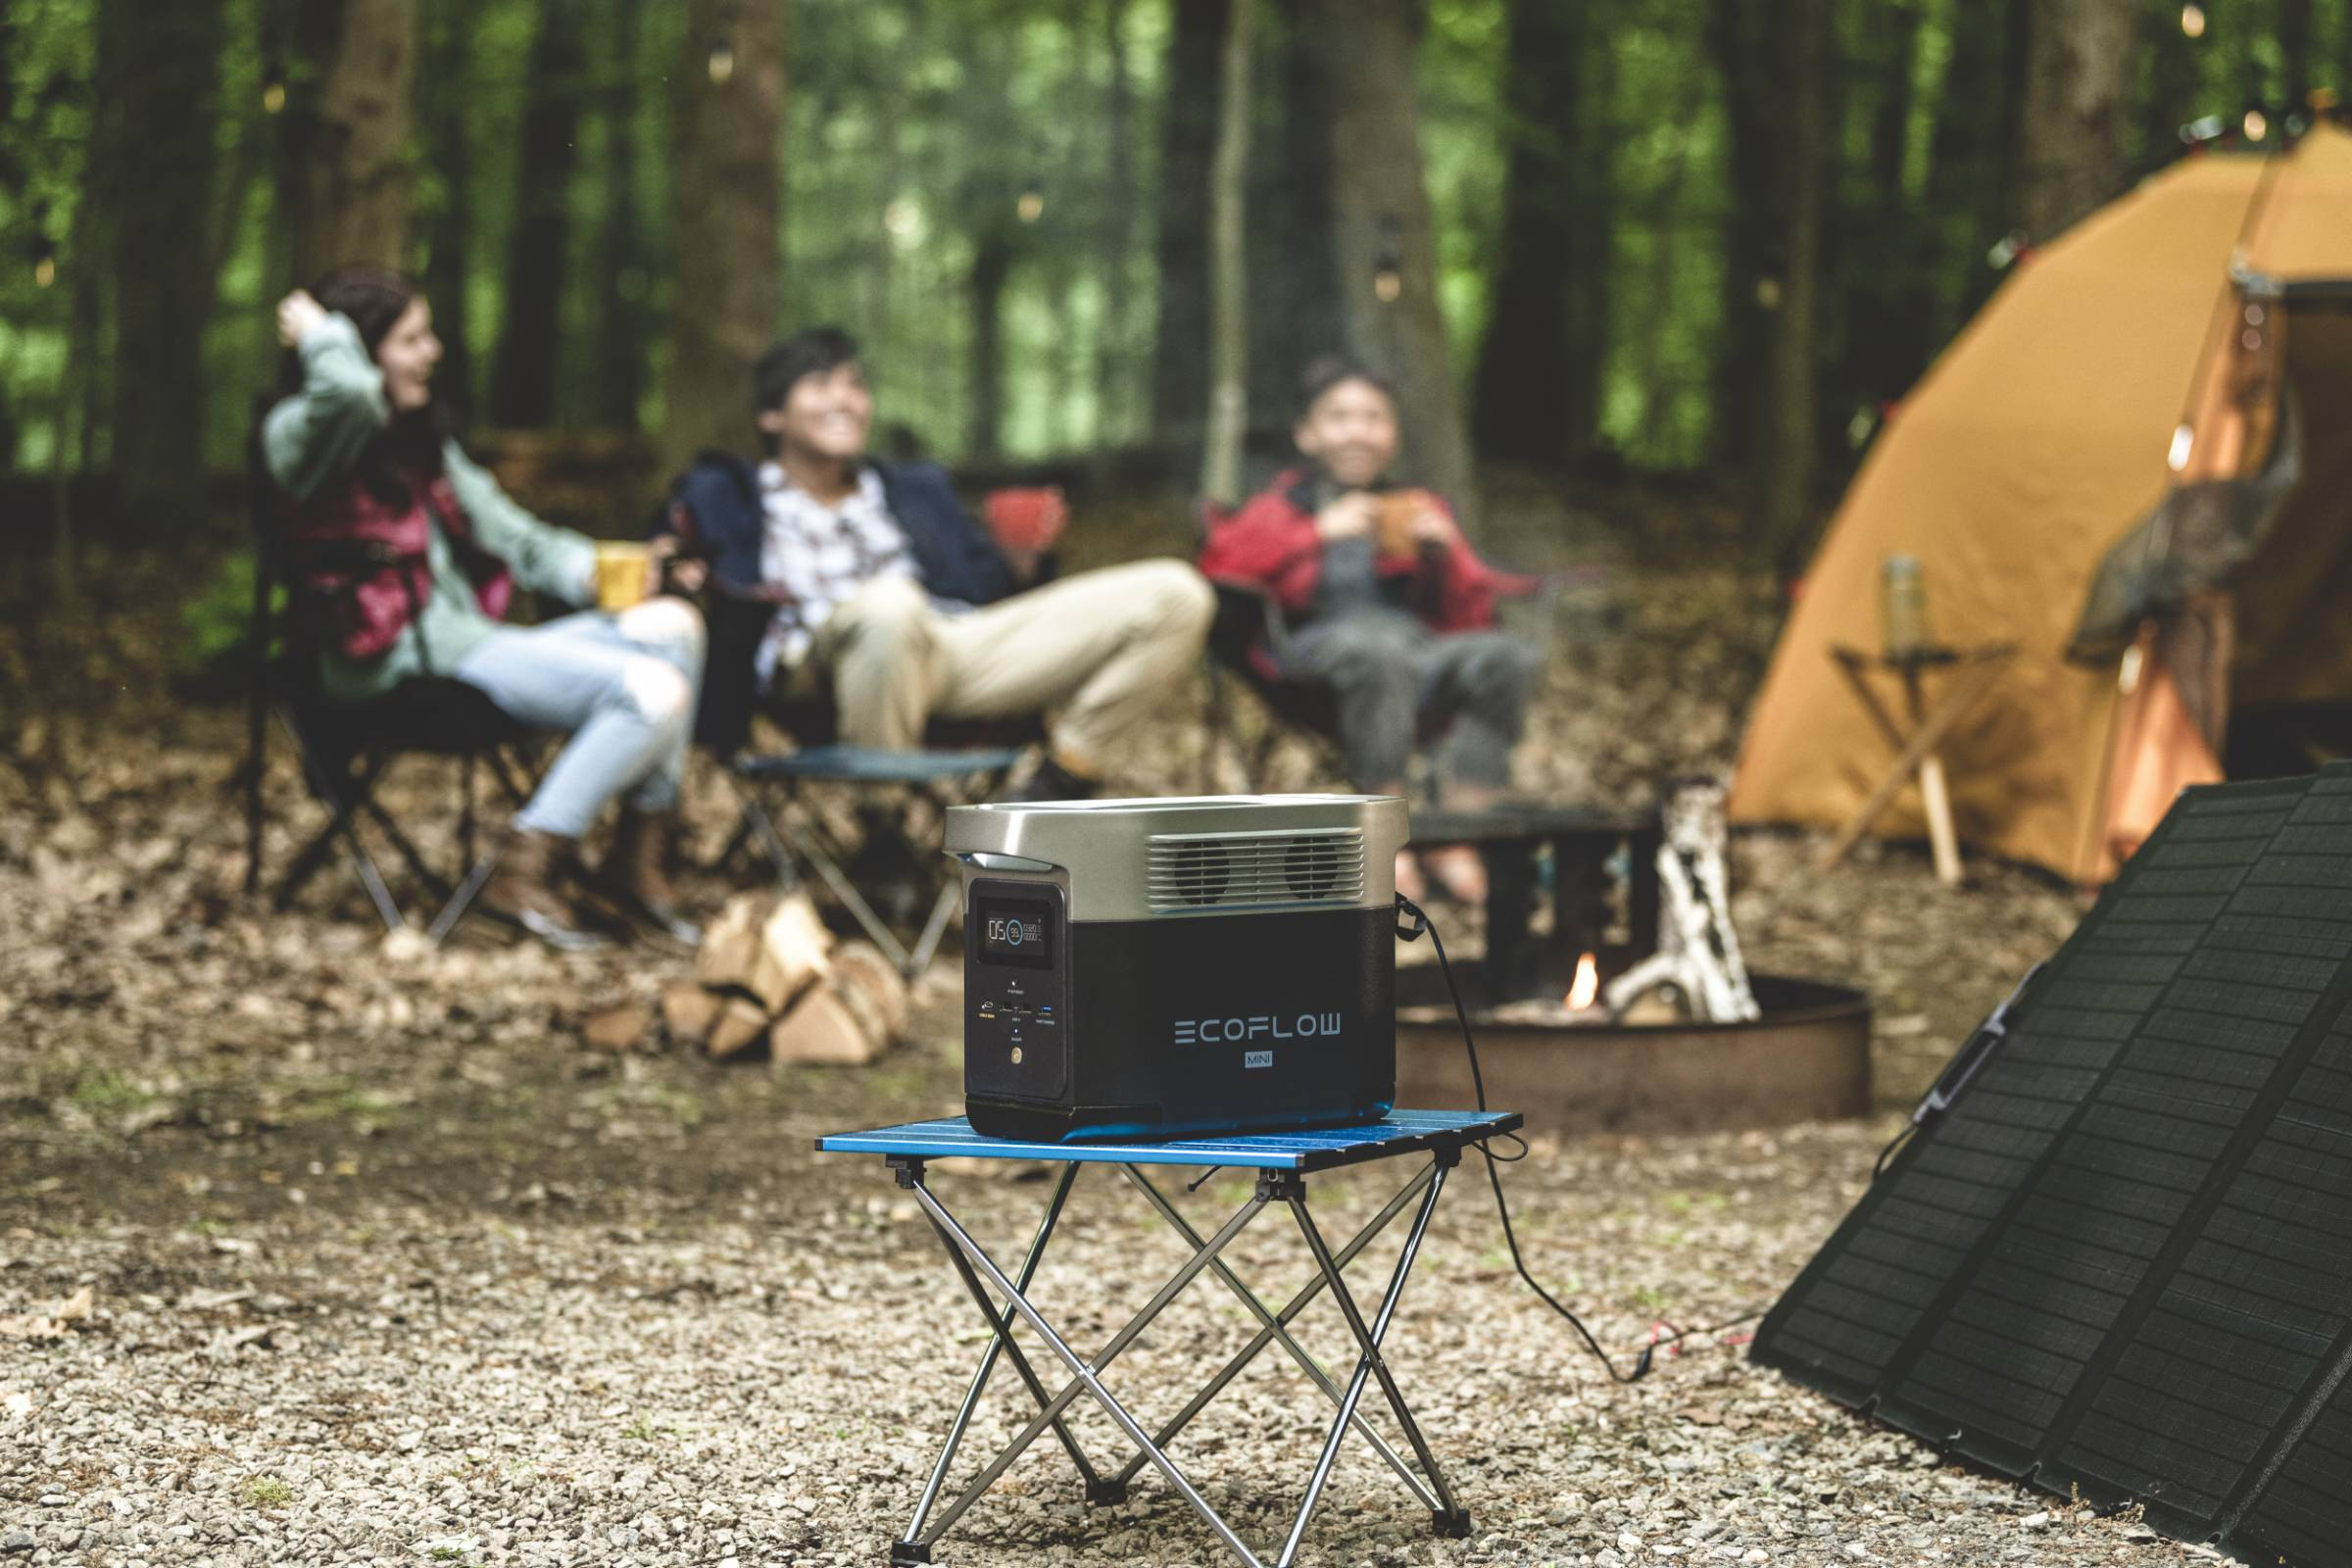 Camping with EcoFlow DELTA mini